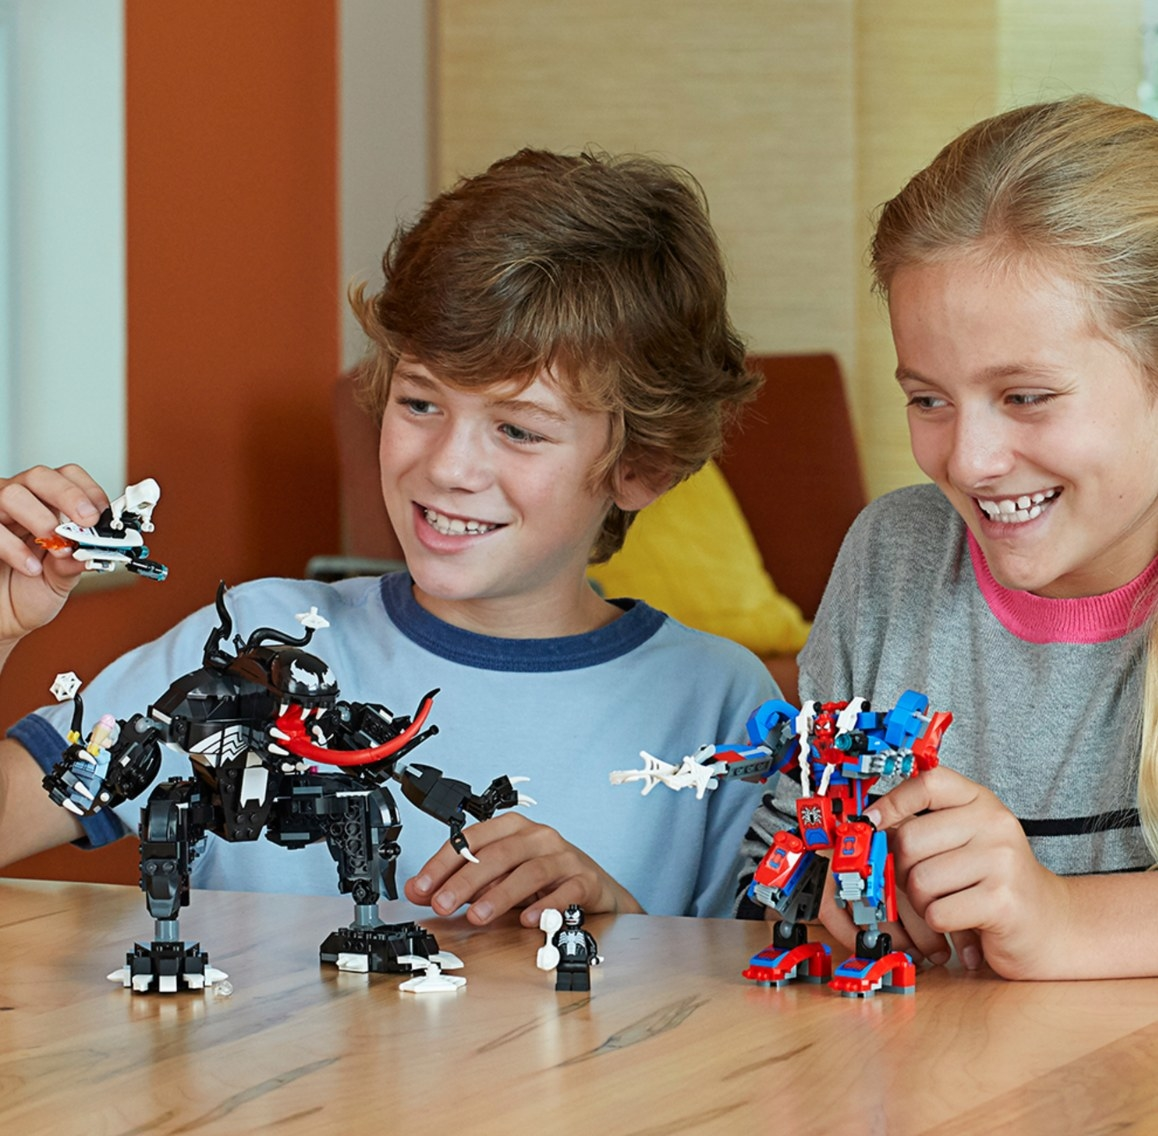 The LEGO superhero set with Marvel characters